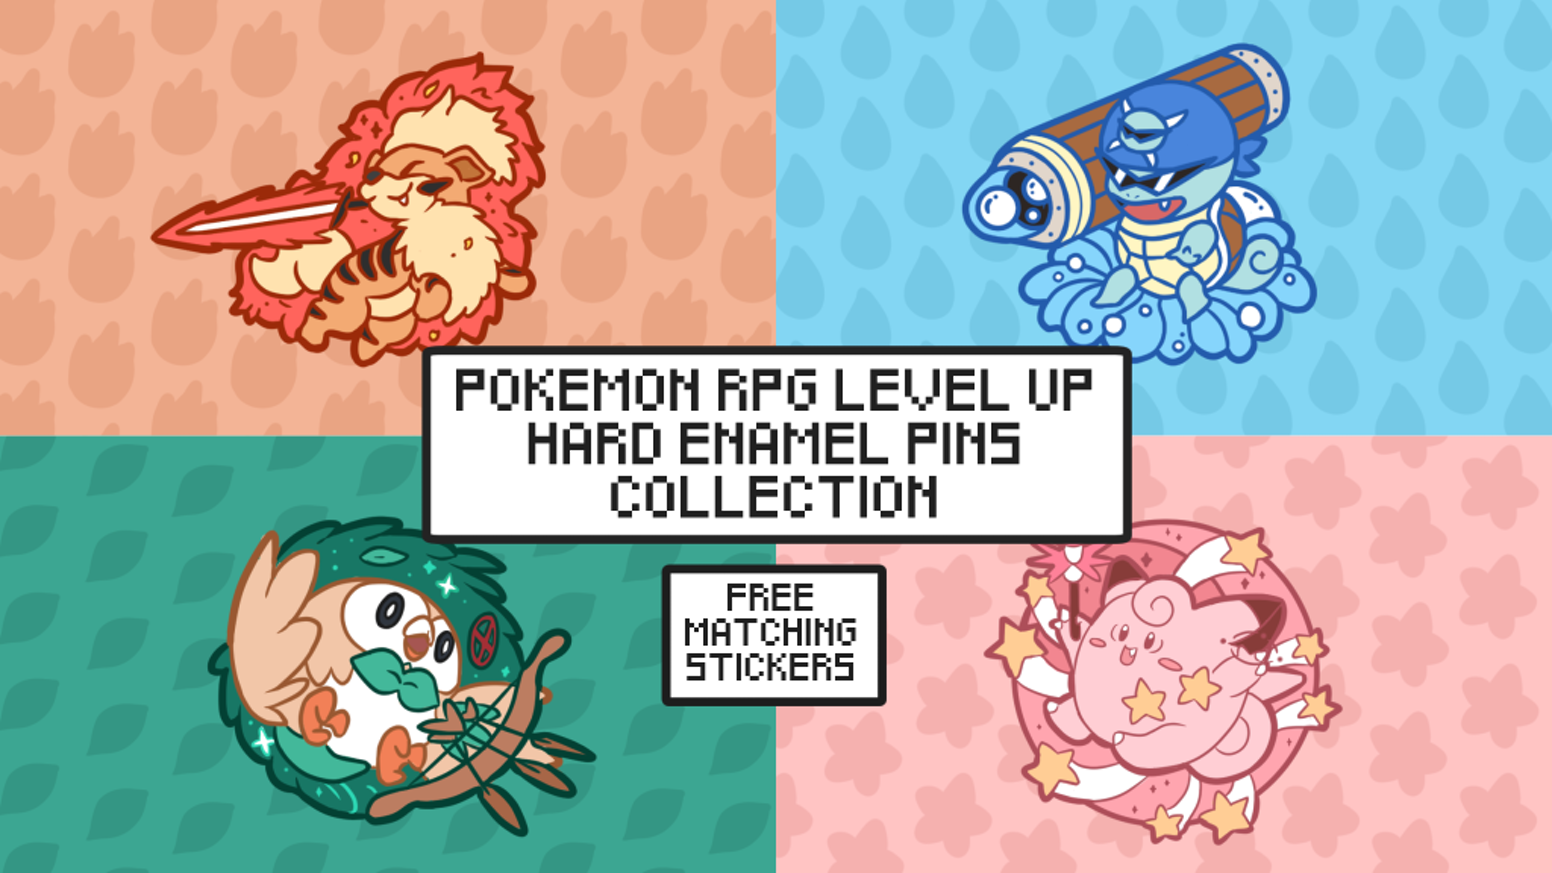 Please head over to our online store to purchase these pins!